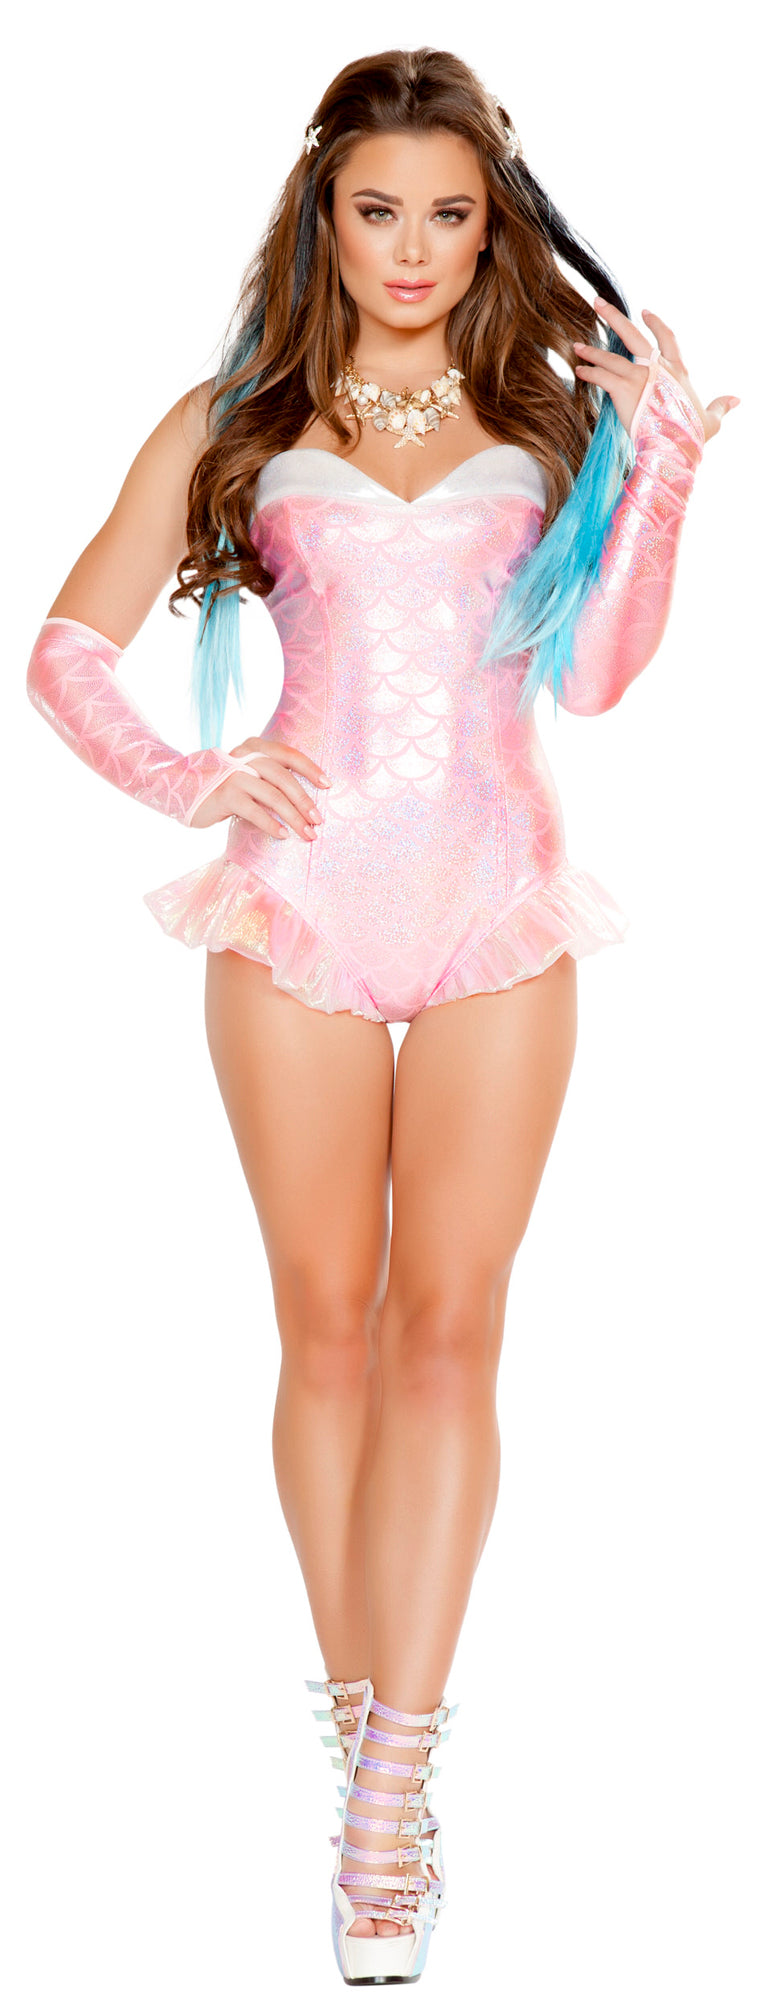 RM-4661 Pink Mermaid Romper Costume front